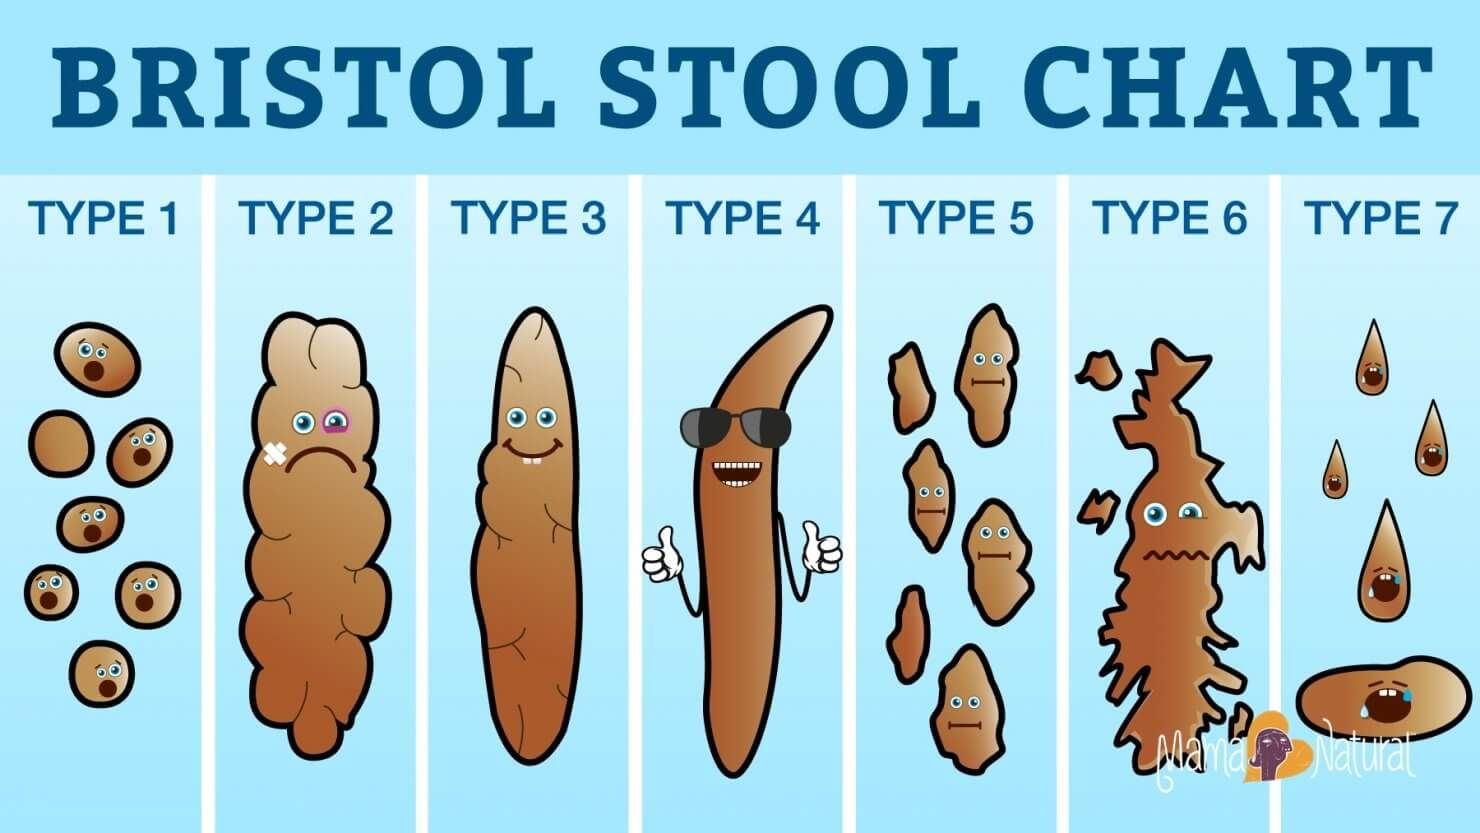 What Your Poop Says About Your Health For Serious  Bristol